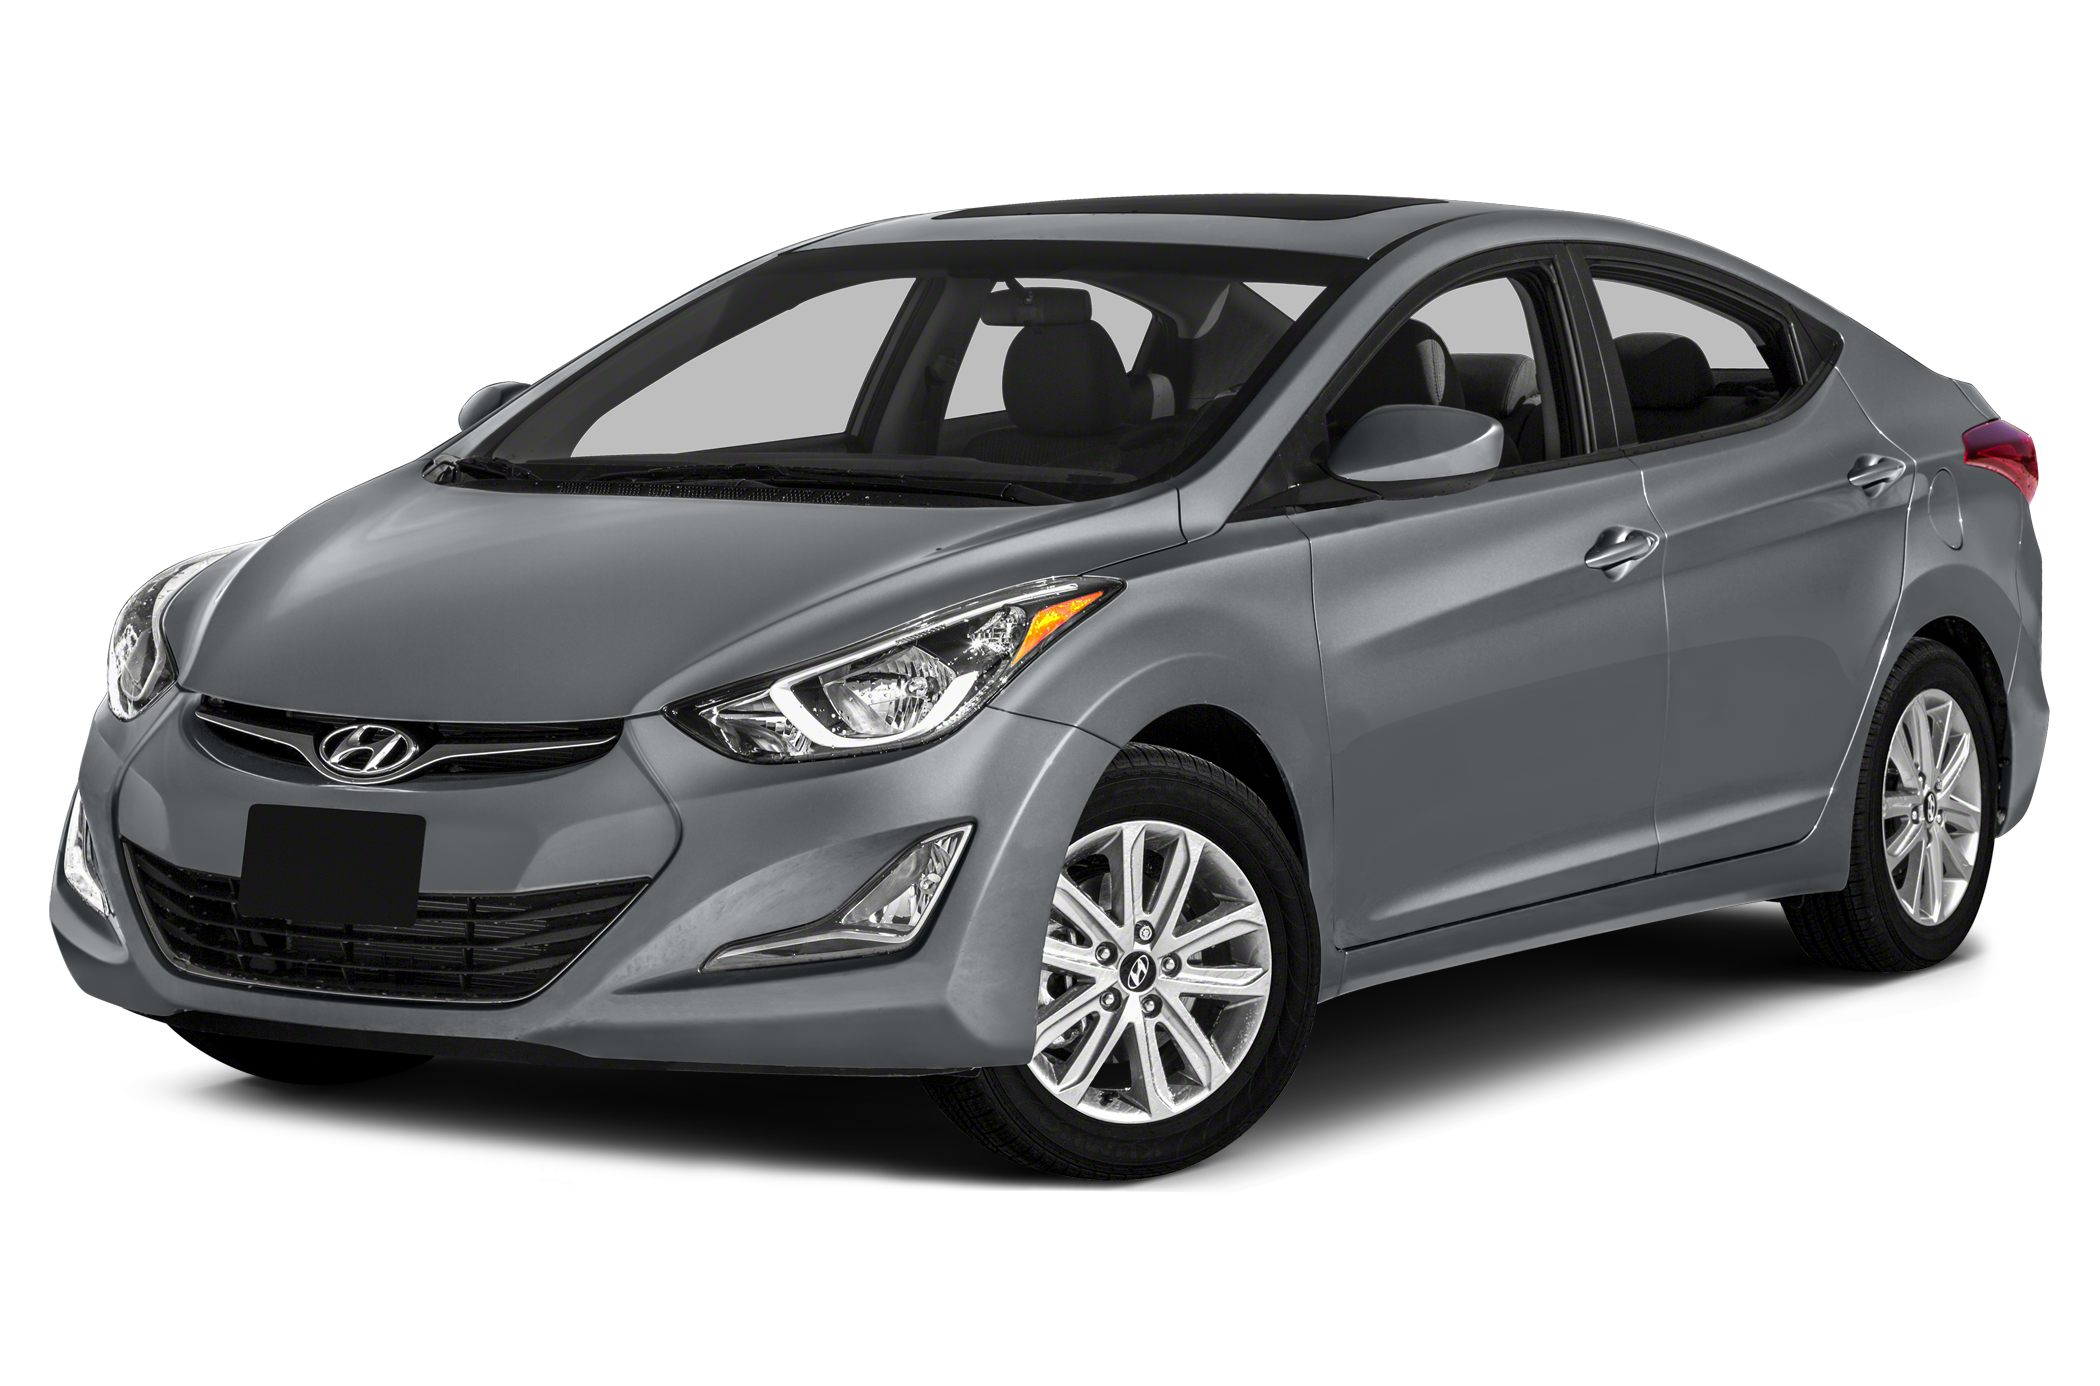 2015 Hyundai Elantra SE Price includes 2250 - Retail Bonus Cash Exp 0430 Miles 10Color Qu